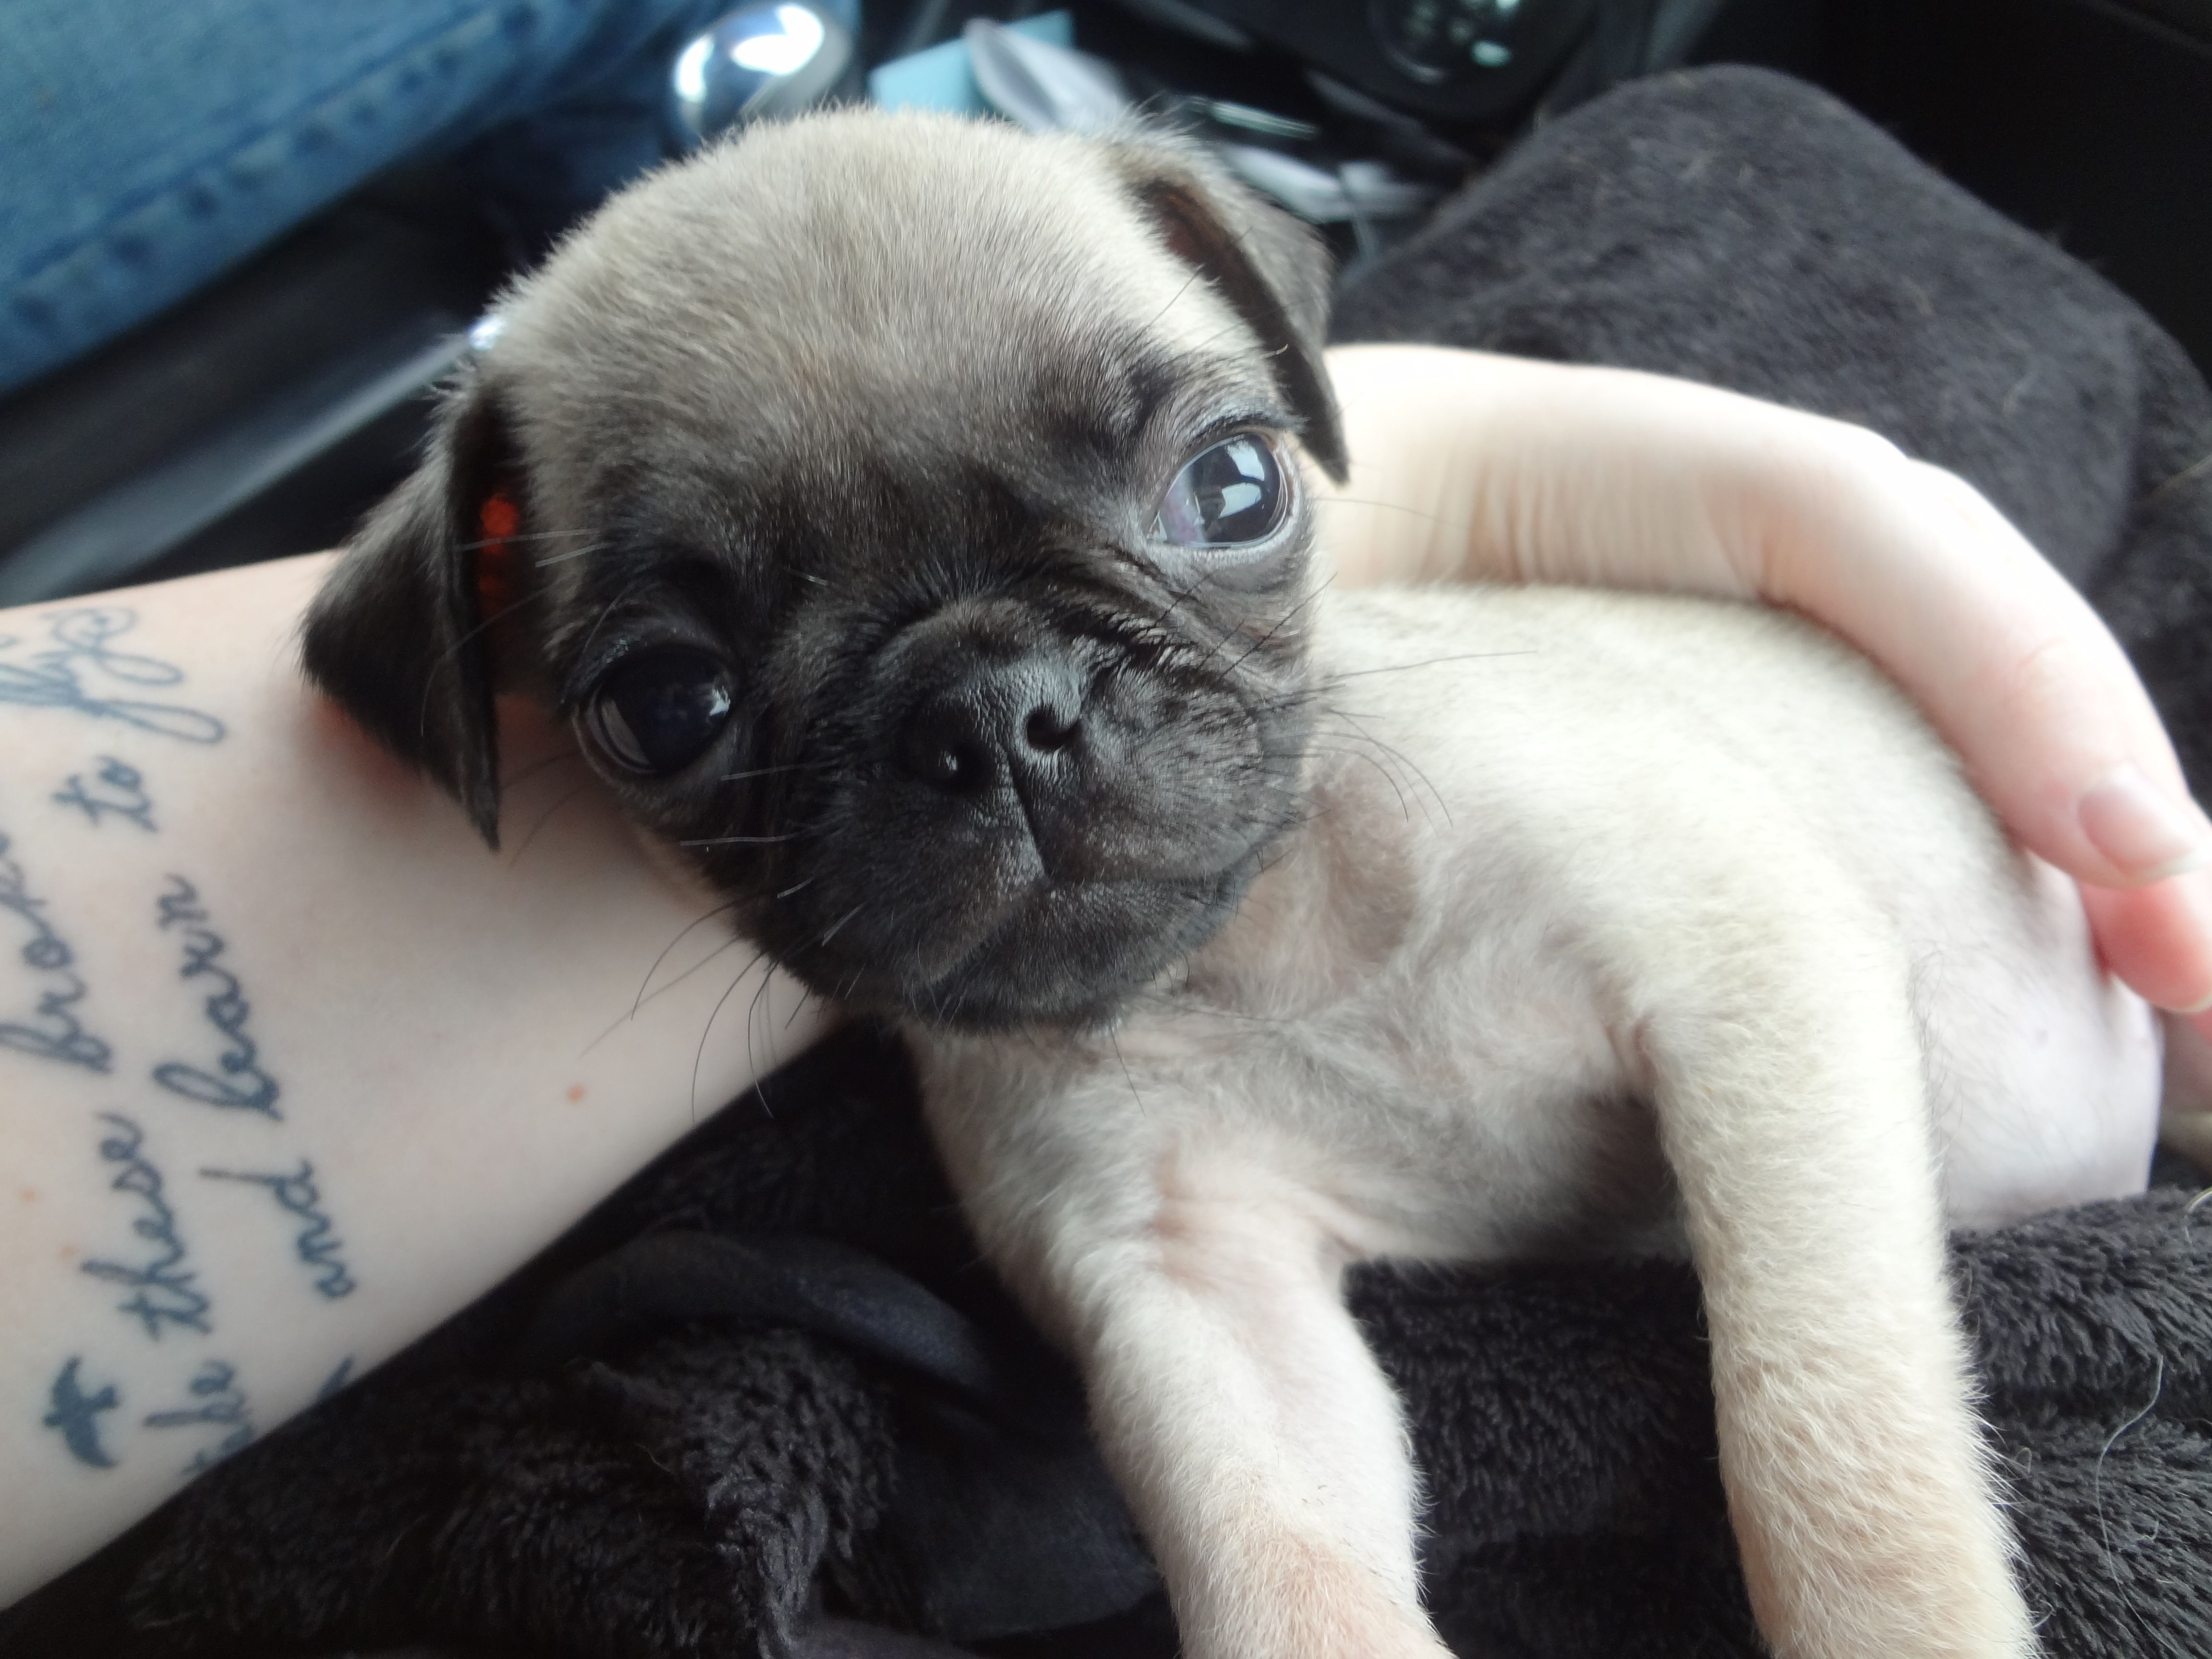 7 Week Old Pug Puppy Pugsly Pug Puppy Puppies